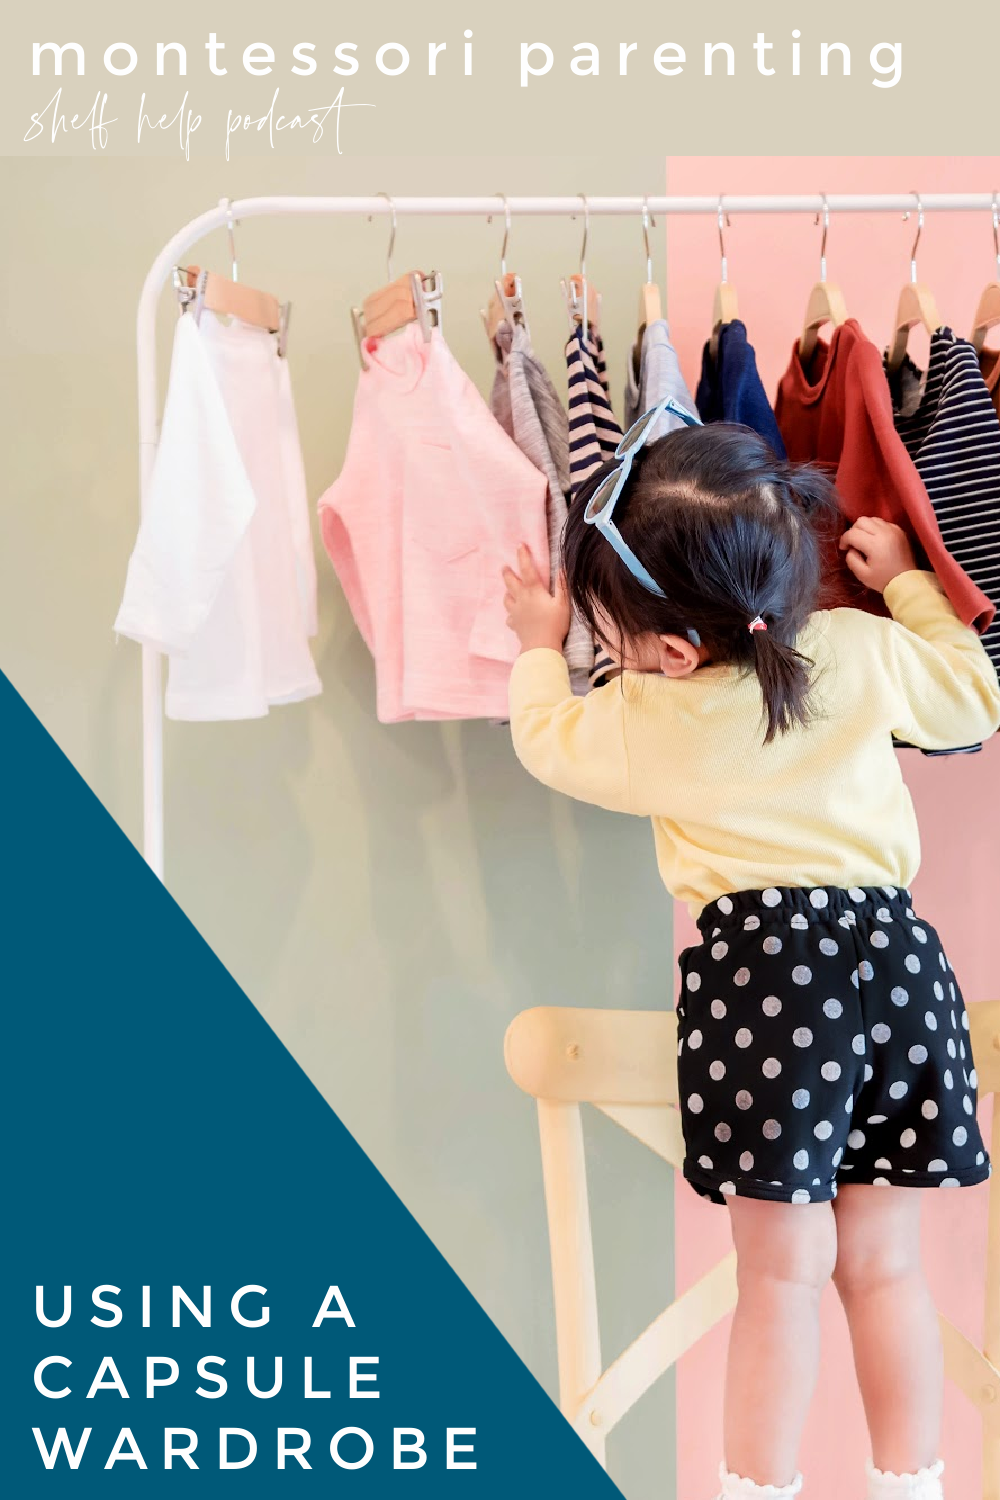 In this Montessori parenting podcast, we discuss how capsule wardrobes to simplify their homes and support our kid's journey toward independence.